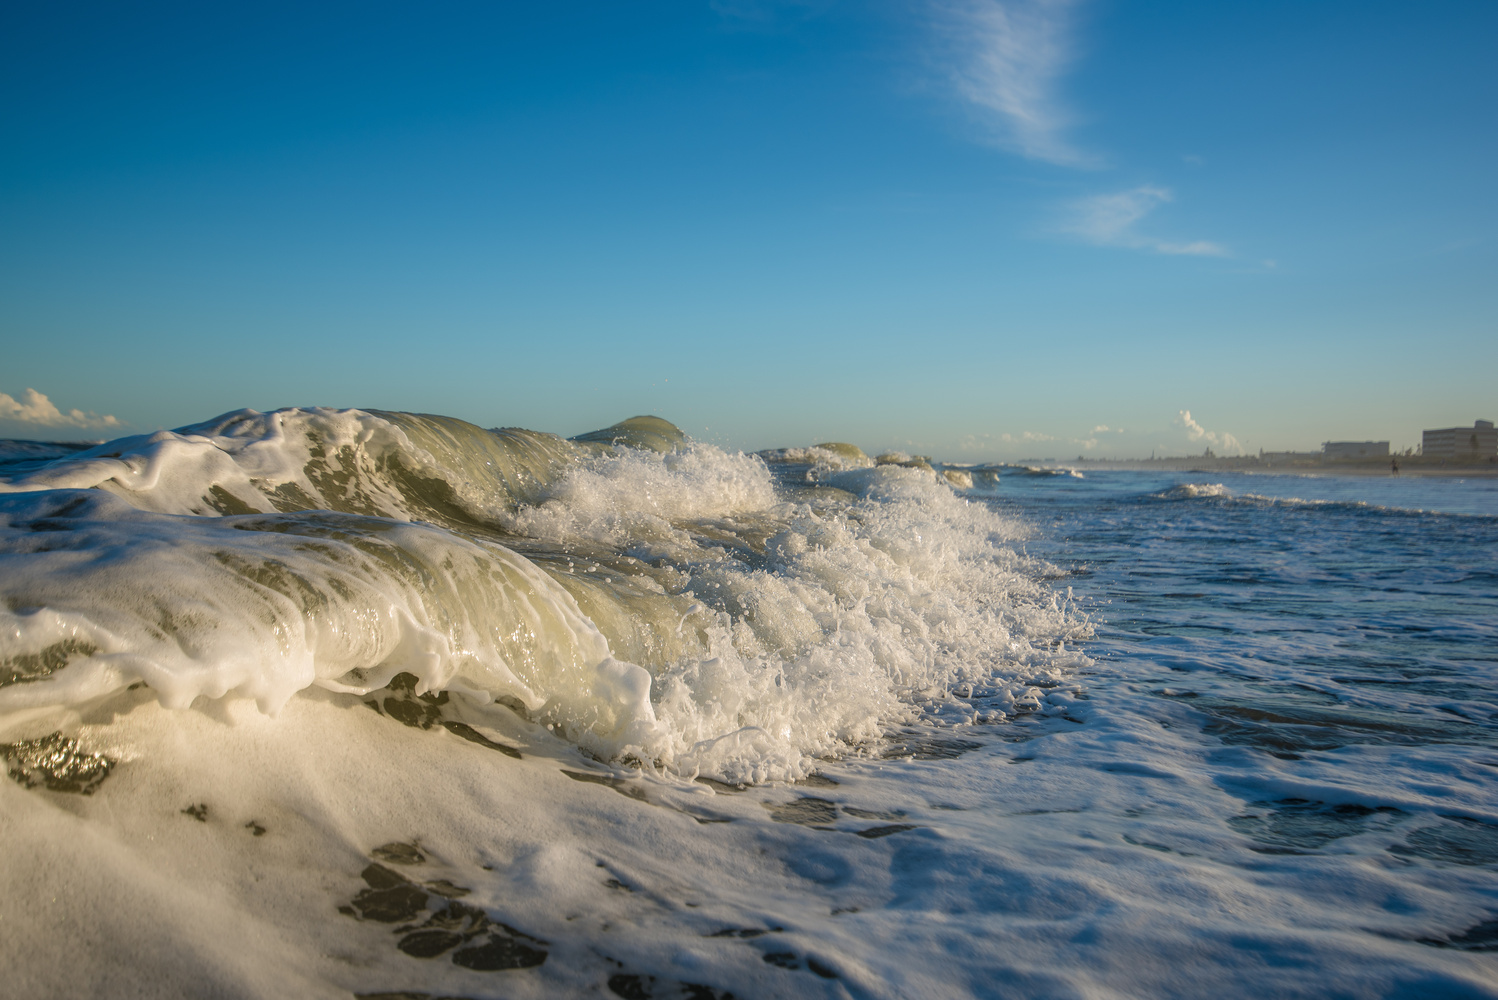 Cocoa Beach by Kyle Rosenmeyer